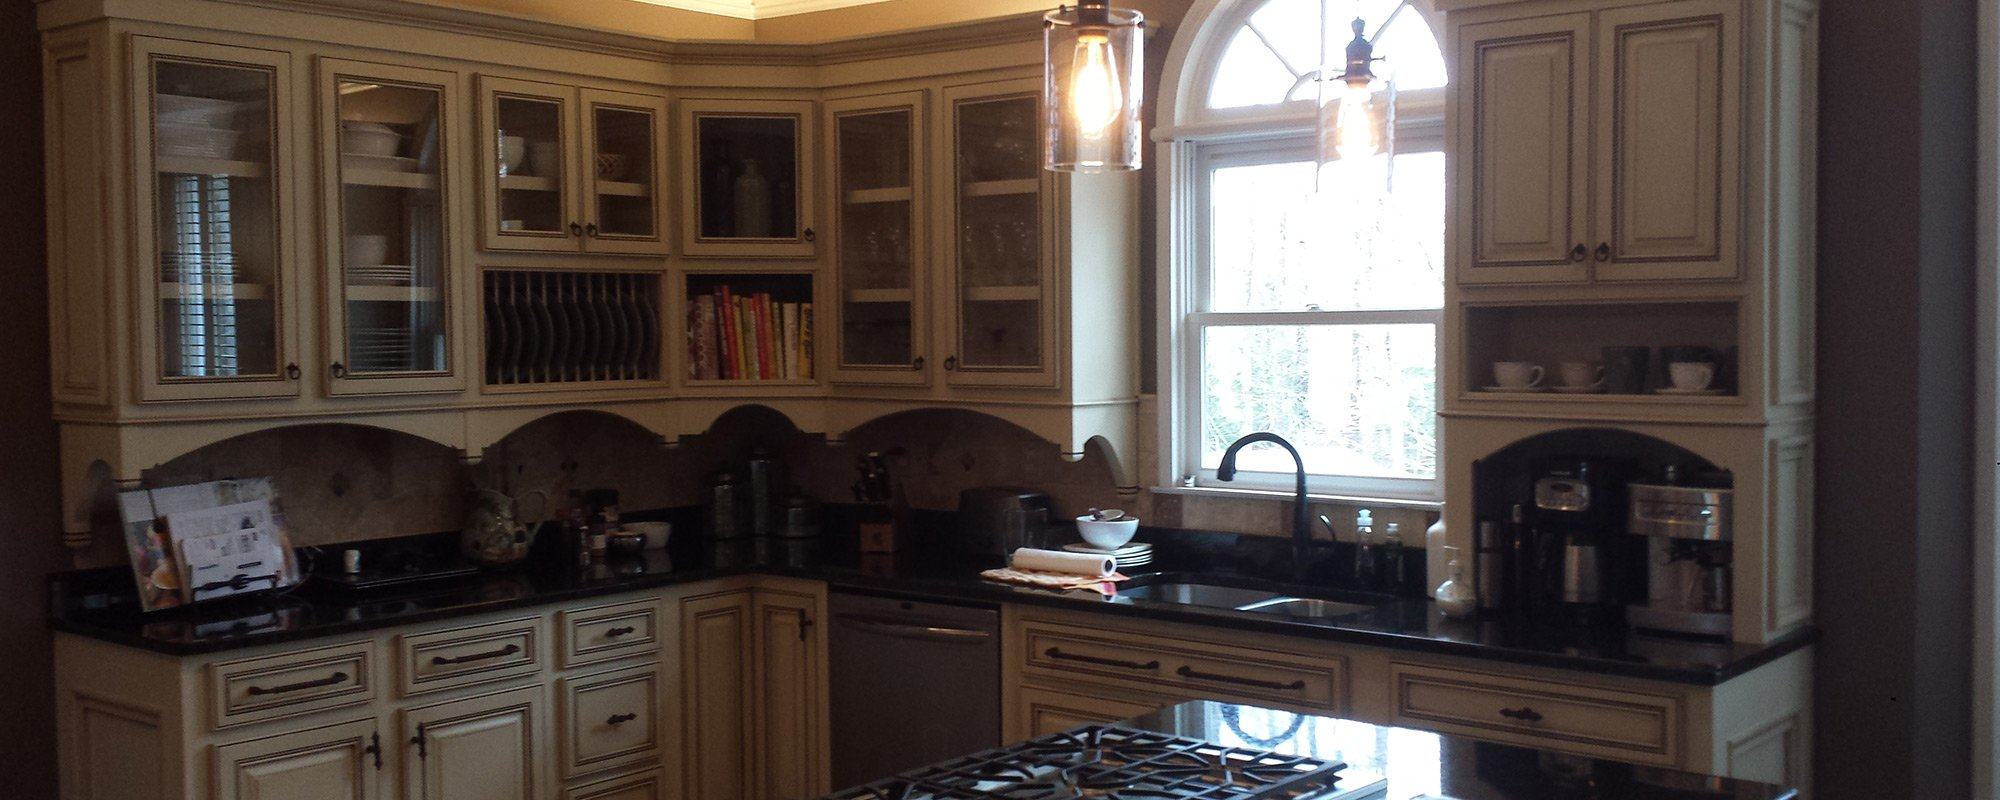 Kitchen Cabinets Lowest Price Best Price Custom Cabinets Cabinet Refacing Atlanta Ga